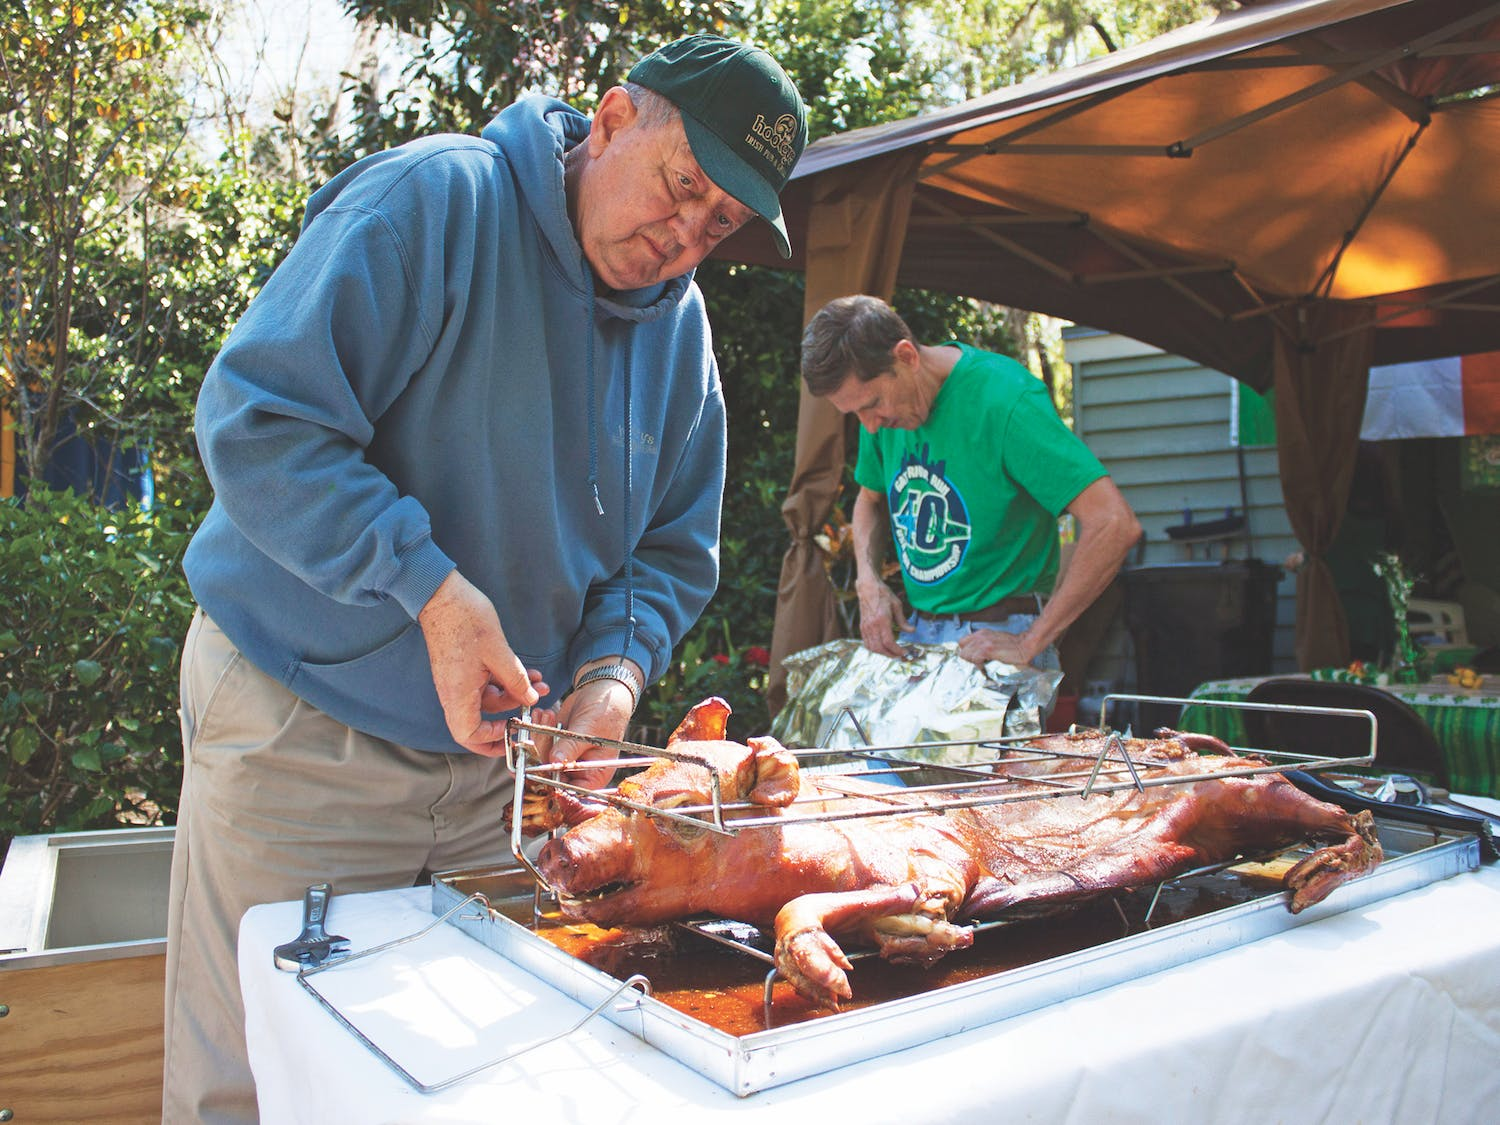 Jim Ferrer, the former assistant vice president of finance and planning at UF,hosted a St. Patrick's Day partySaturday at his house to celebrate the holiday for the past five or six years.